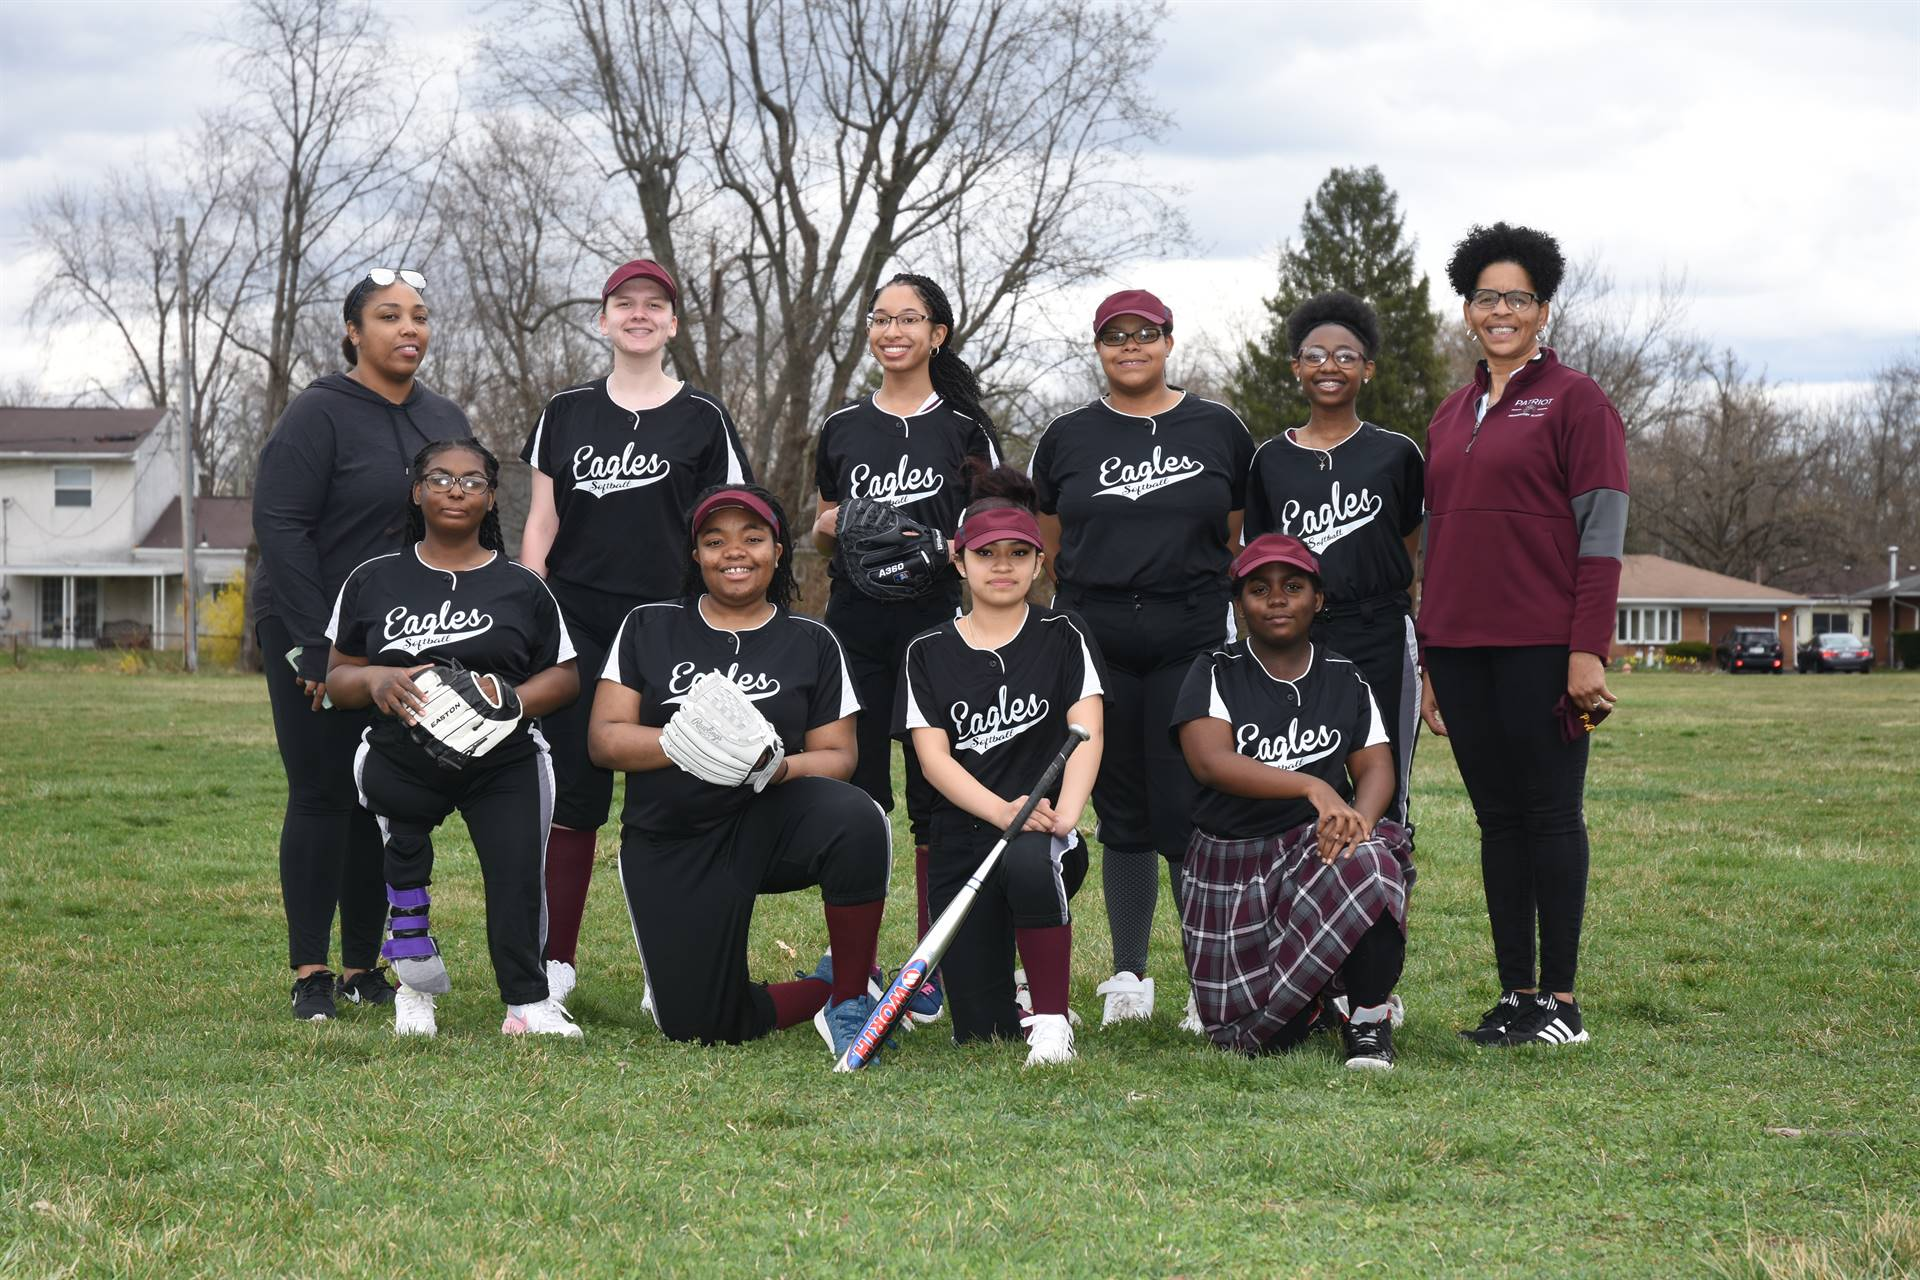 14 students in softball uniforms and coach outside